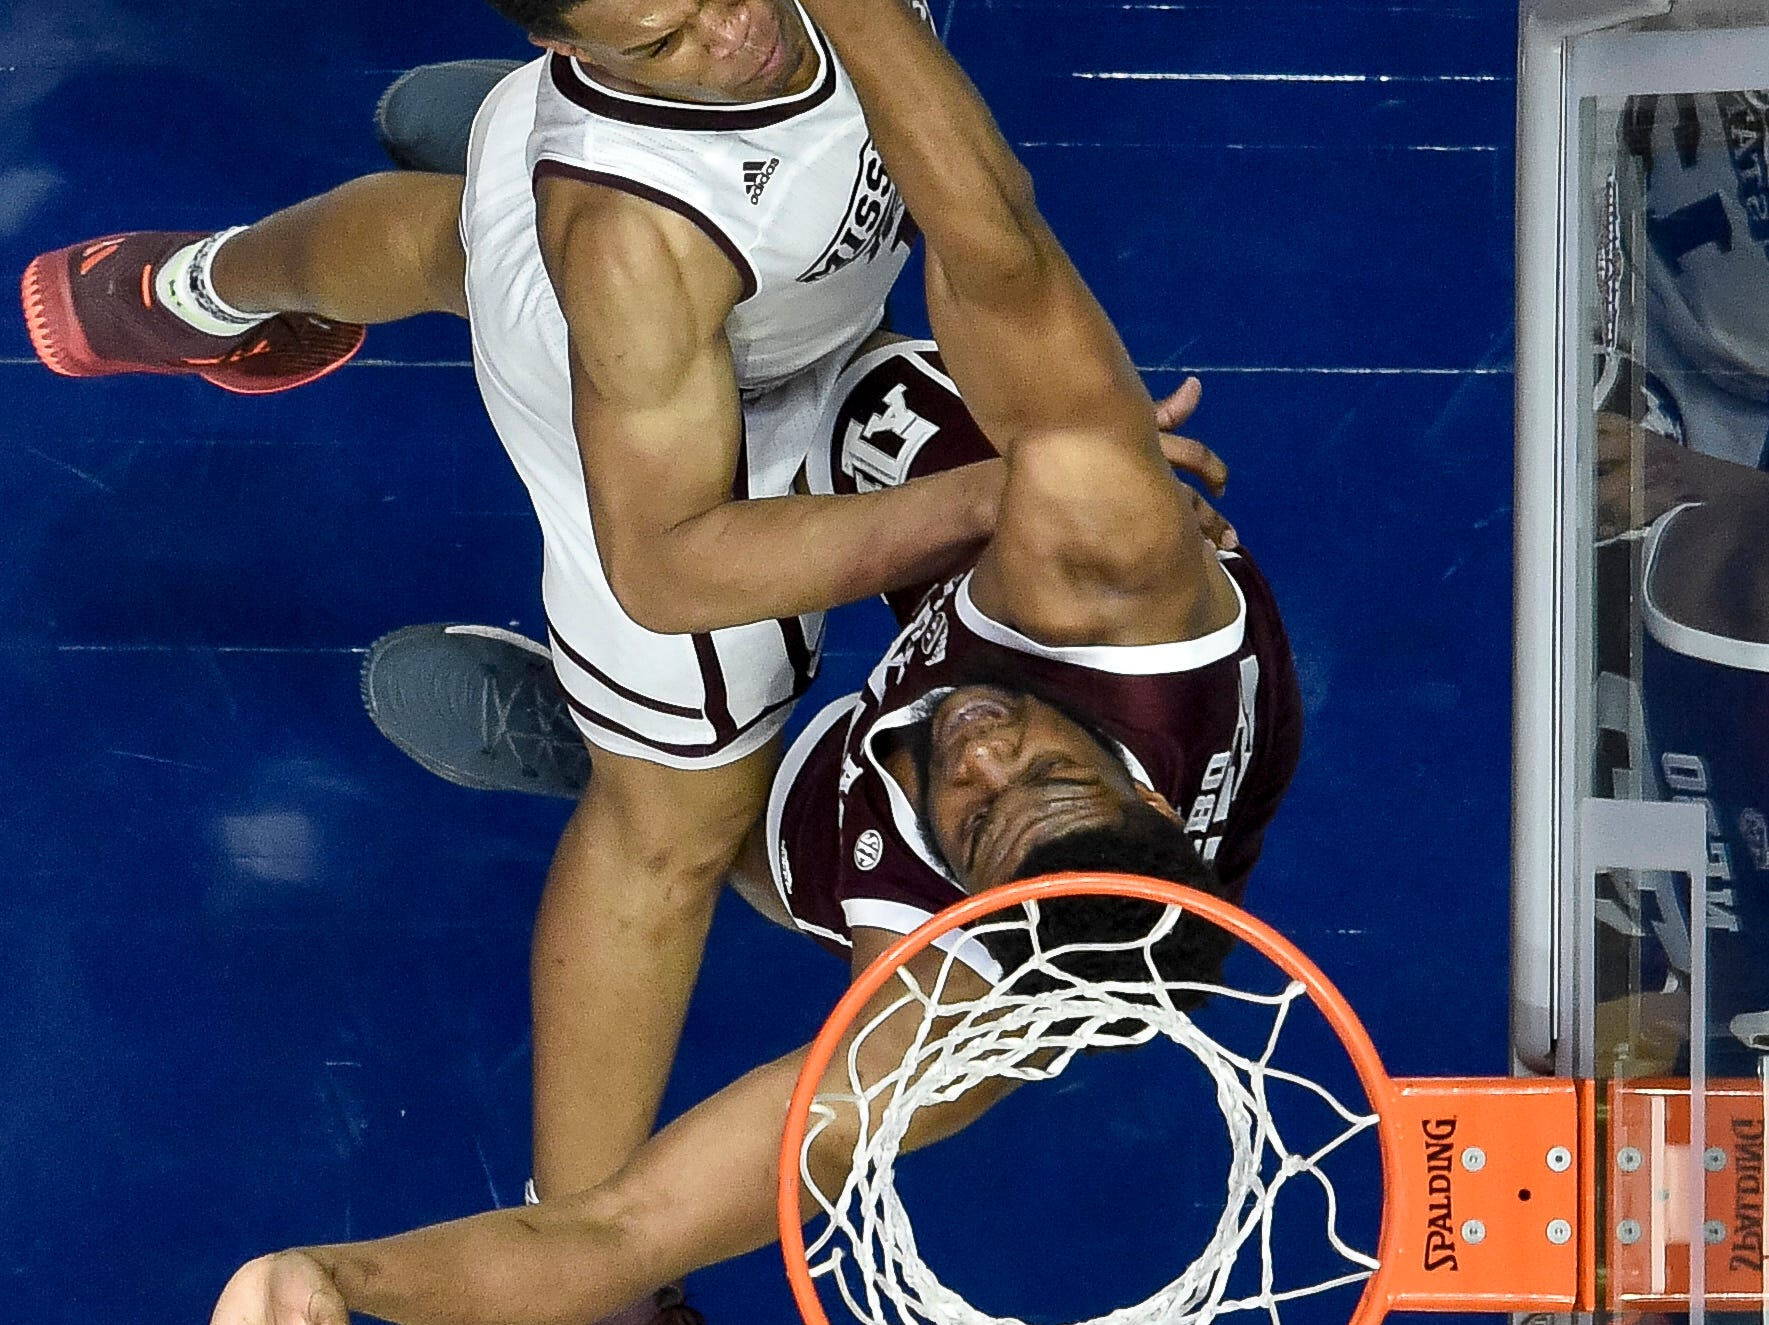 Mississippi State guard Robert Woodard (12) has his shoit blocked by Texas A&M forward Josh Nebo (32) during the first half of the SEC Men's Basketball Tournament game at Bridgestone Arena in Nashville, Tenn., Thursday, March 14, 2019.